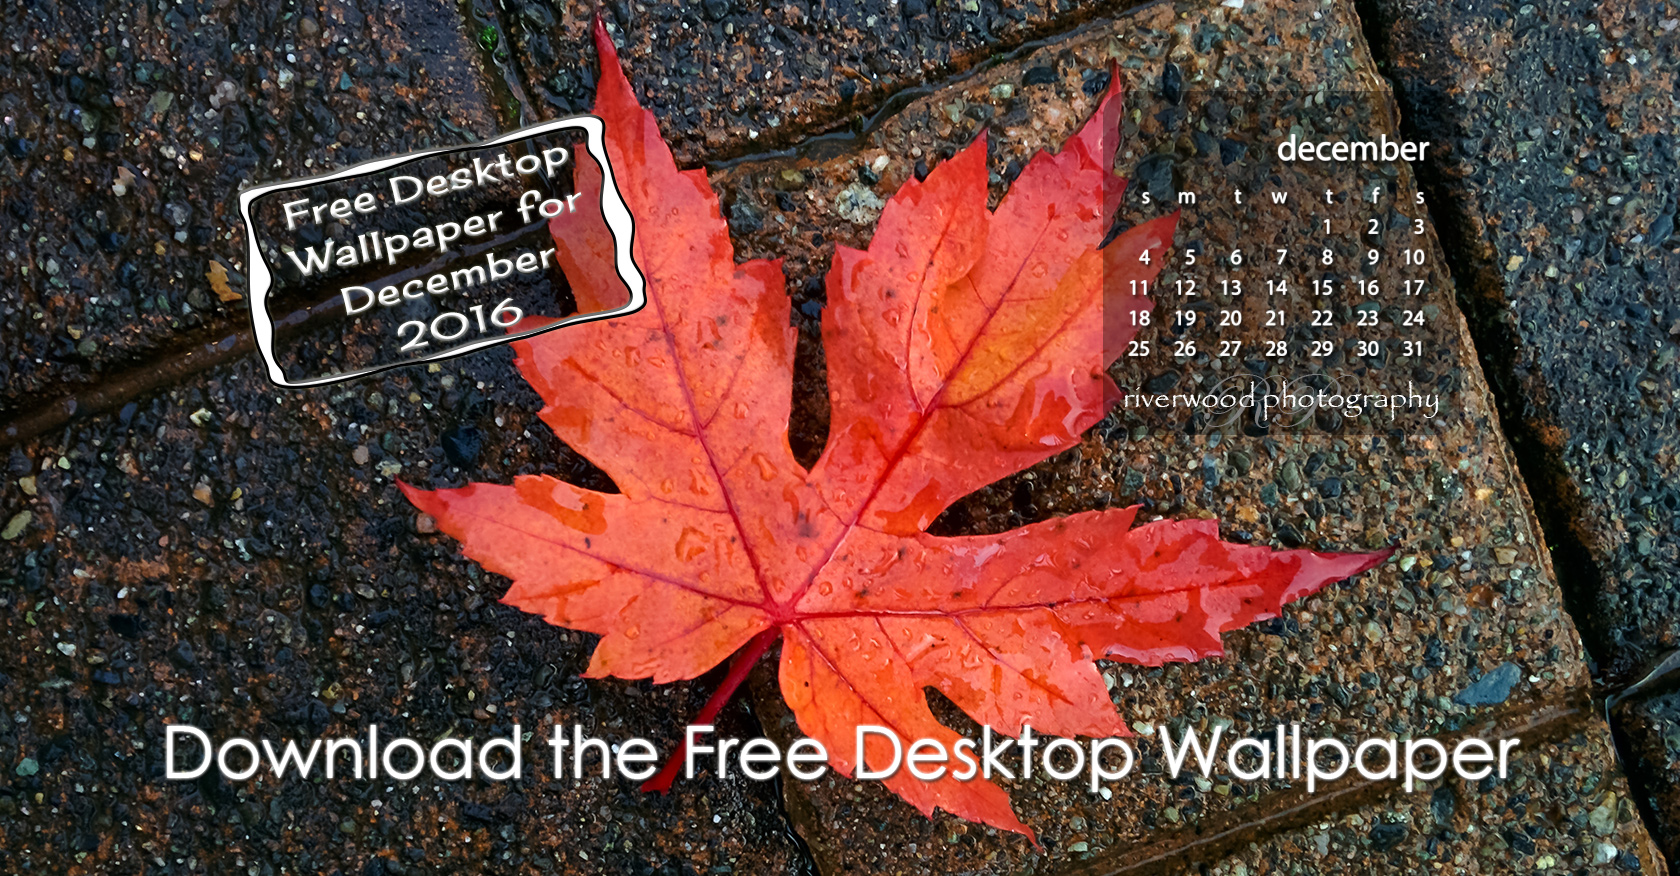 Free Desktop Wallpaper for December 2016